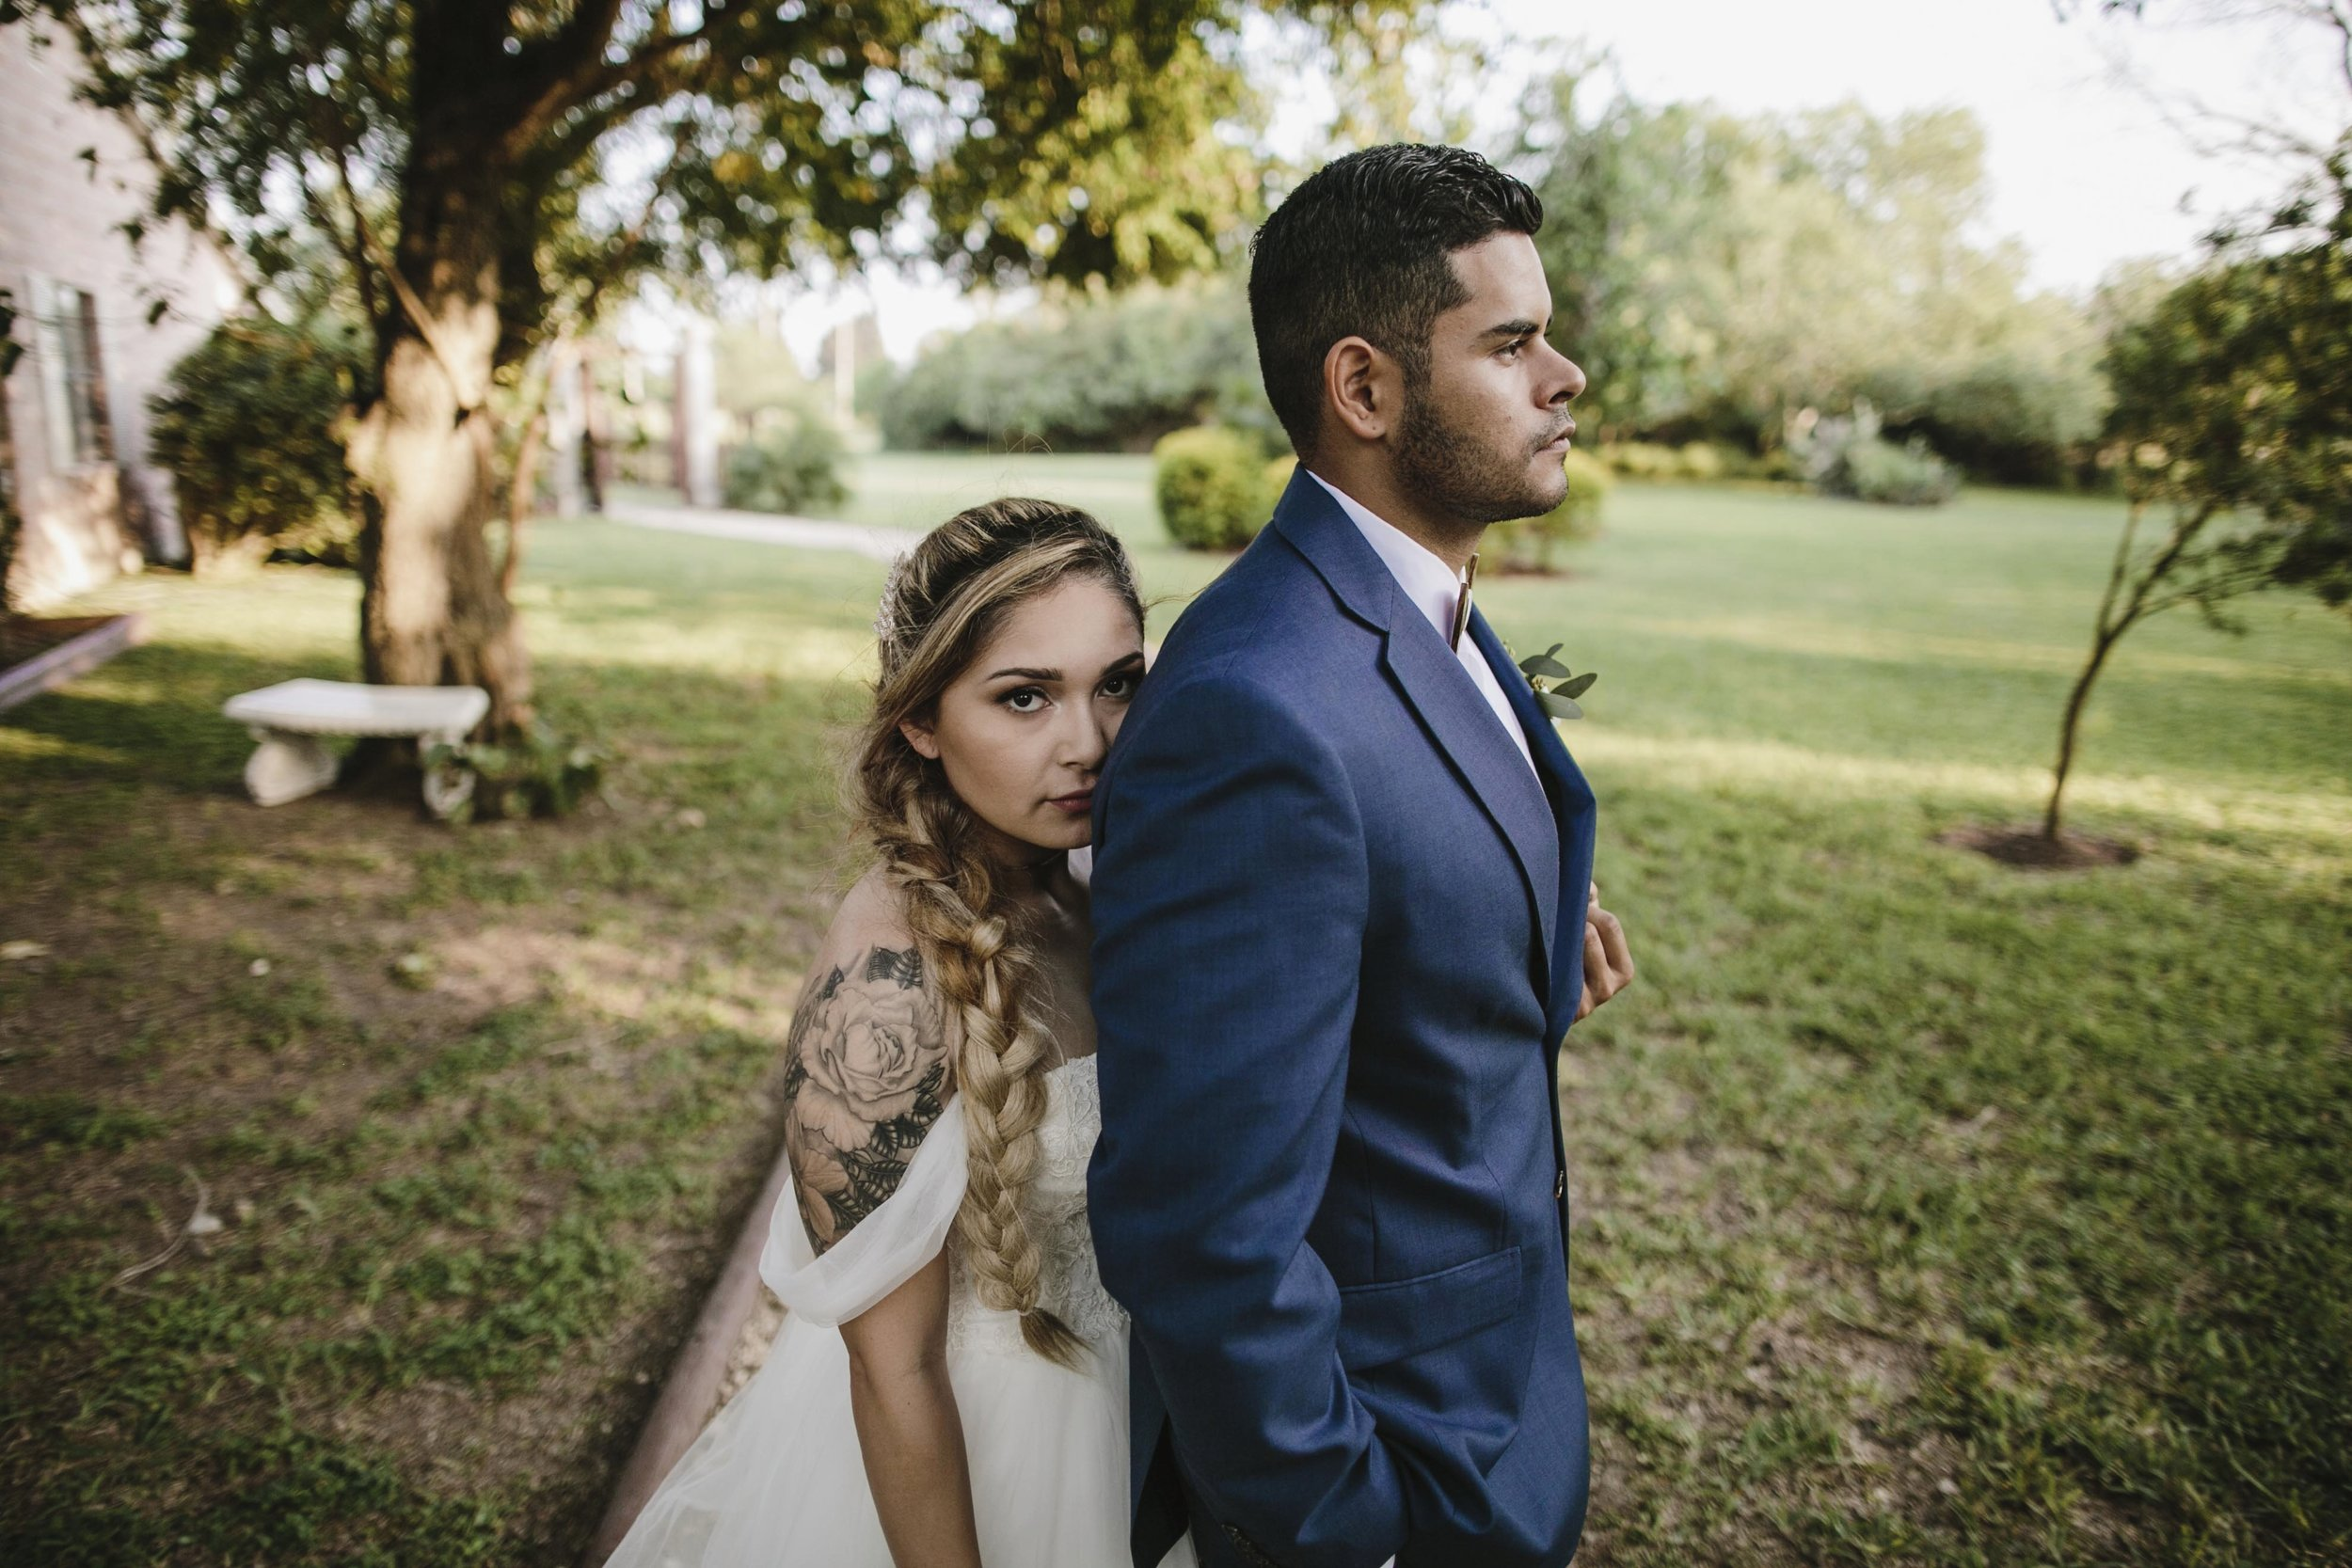 alfonso_flores_destination_wedding_photography_rancho_la_pergola_brownsville_texas_2.jpg